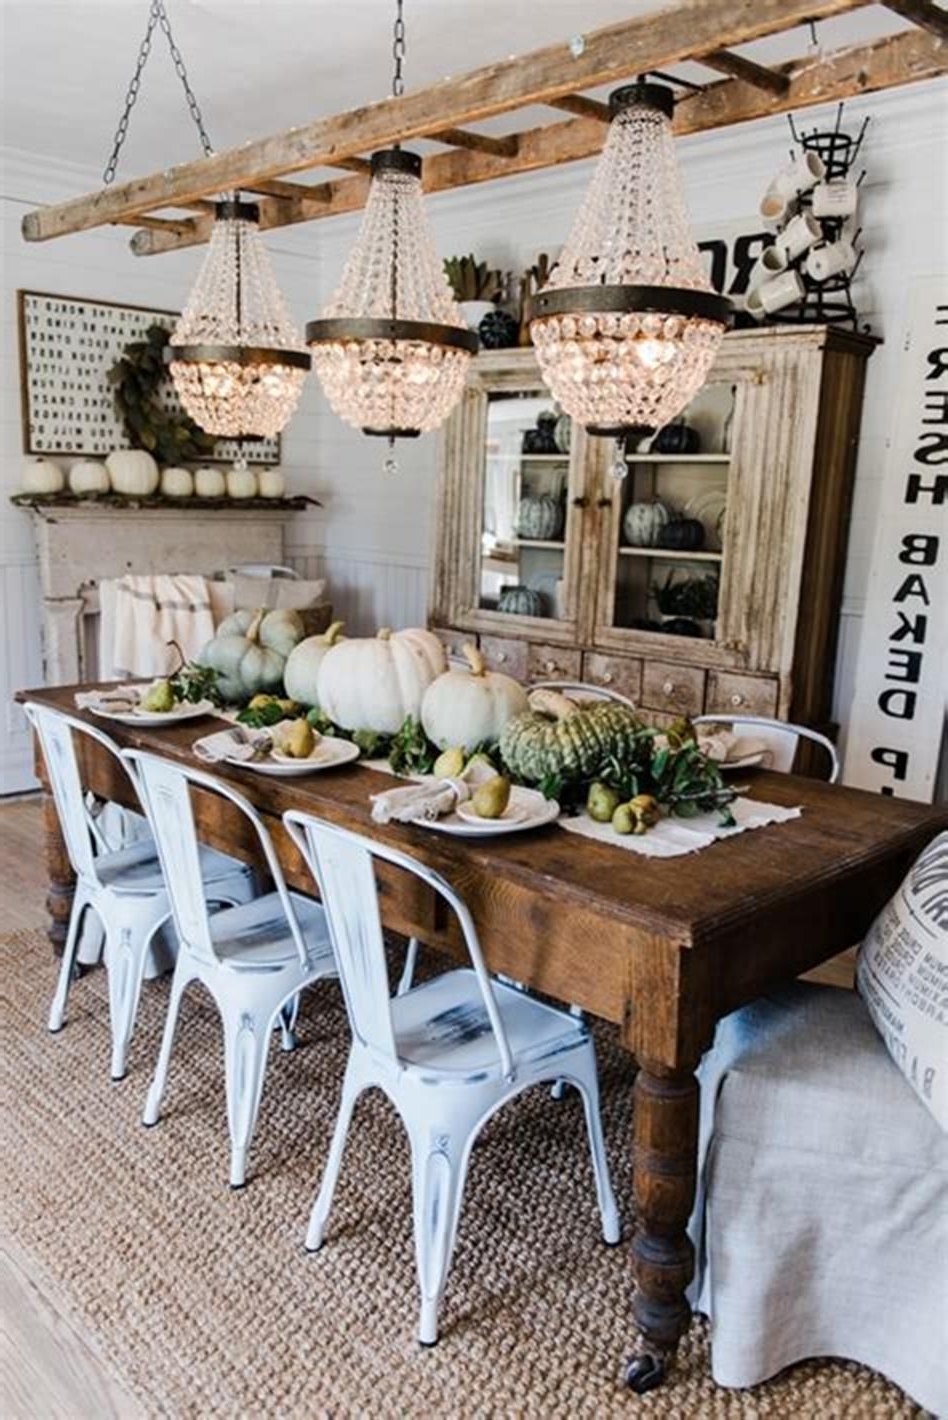 34 Amazing Vintage Rustic Fall Decorating Ideas For This